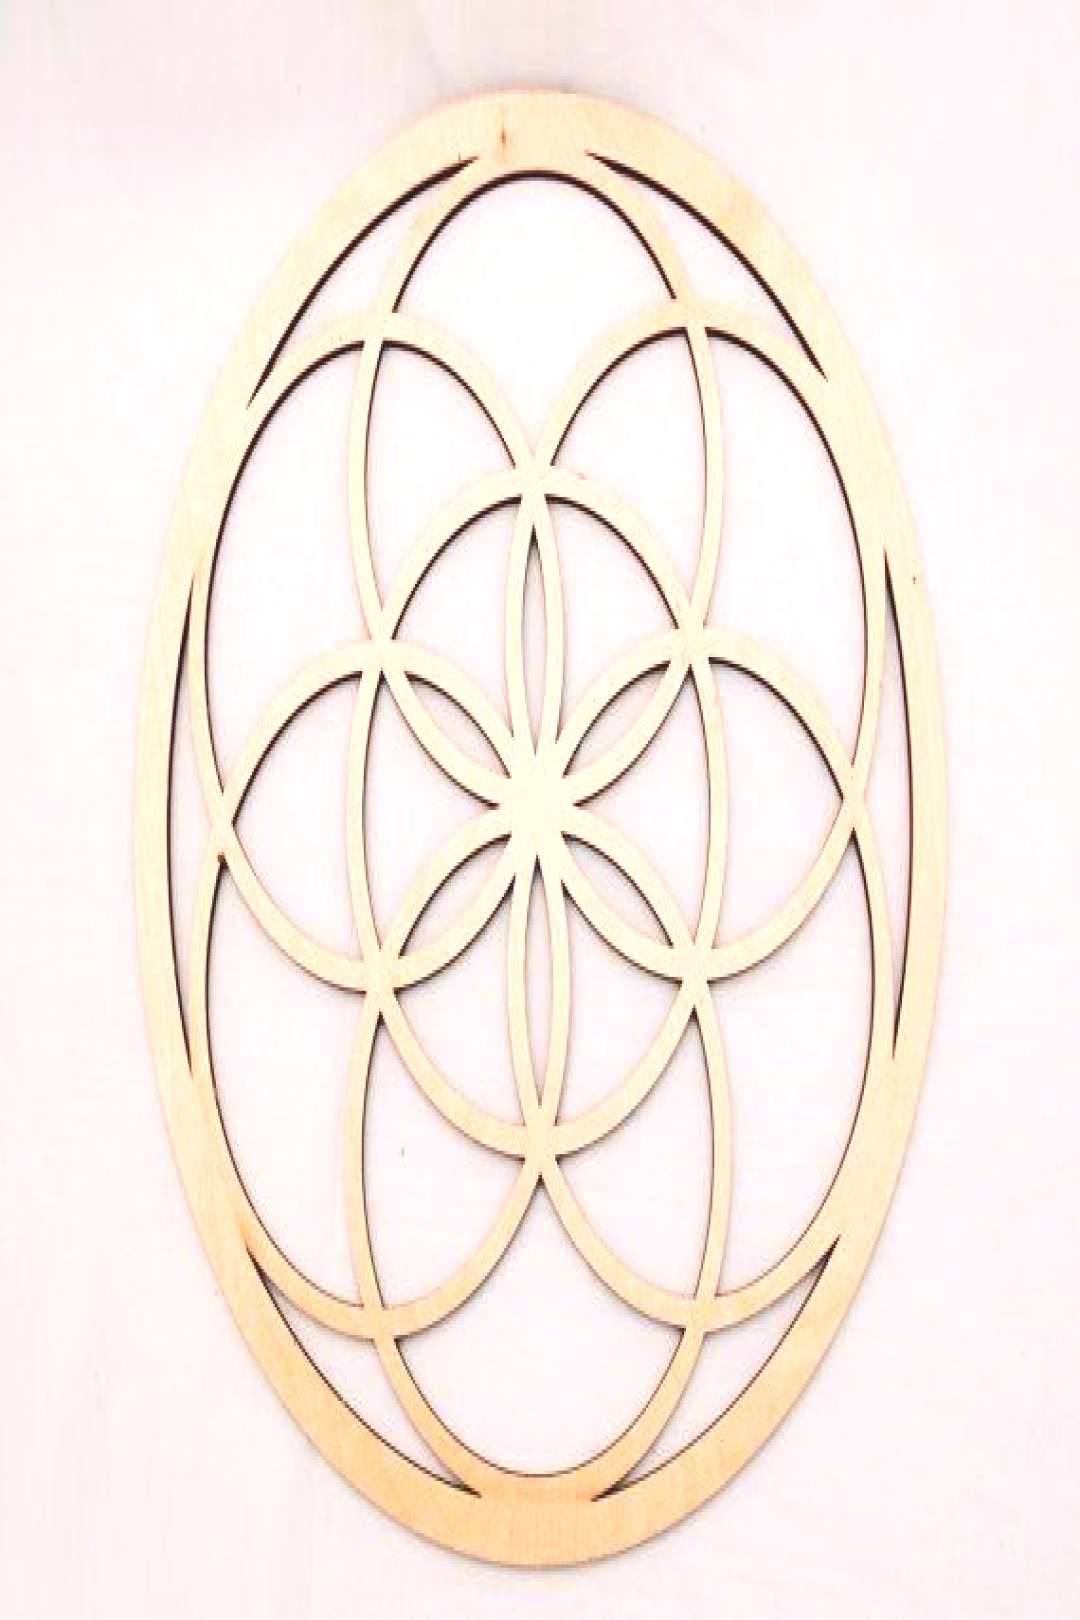 Seed of Life Wall Art  Raw Wood Home Decor by eyegrinddesign on Etsy